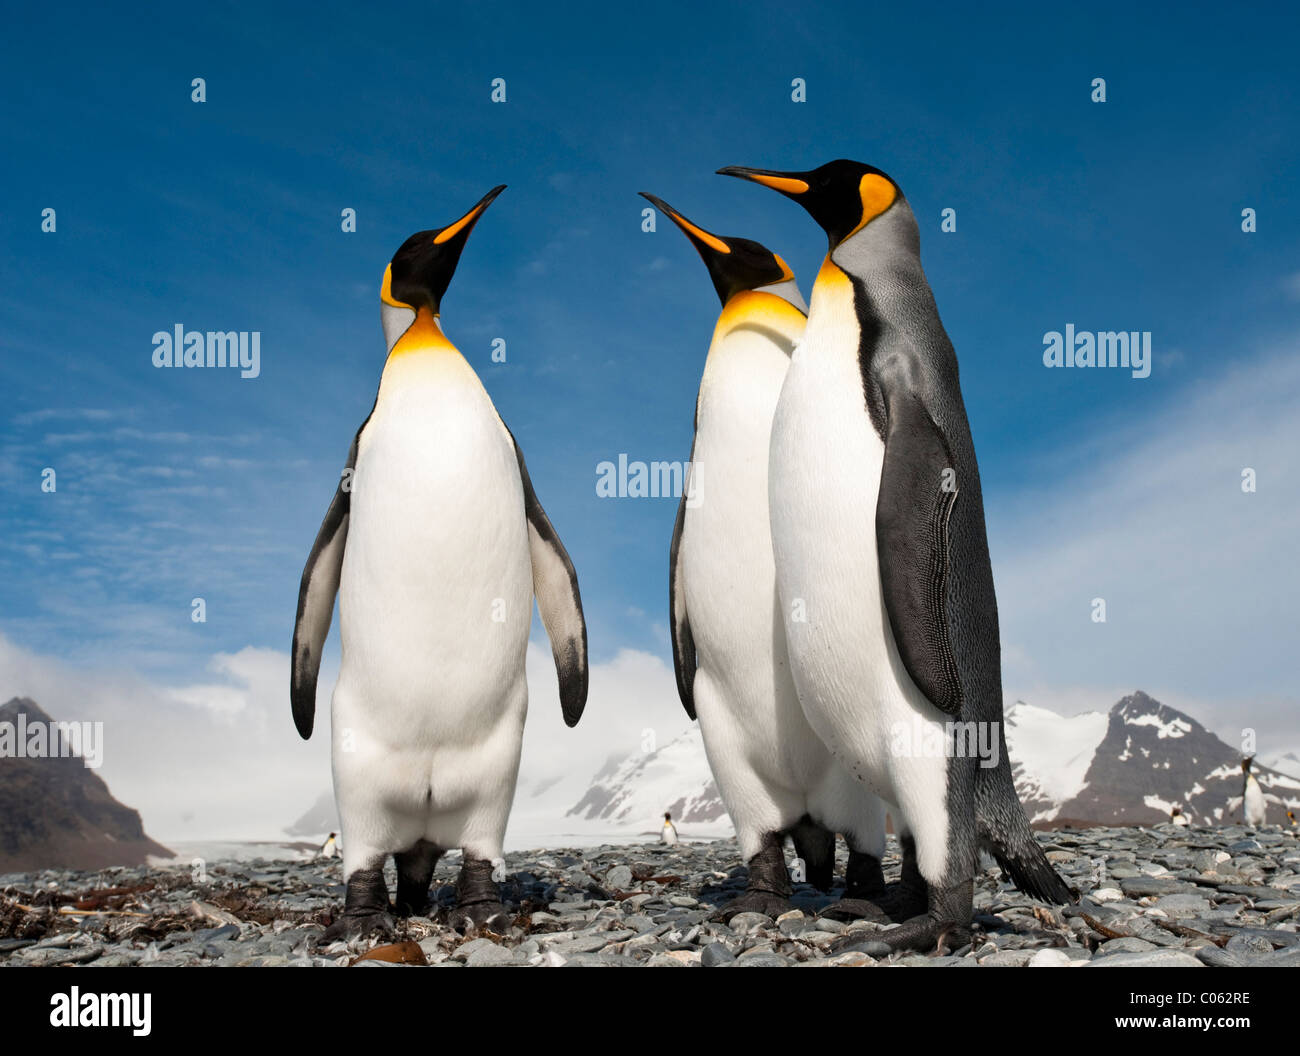 King Penguins on the beach at Salisbury Plain, South Georgia, South Atlantic. - Stock Image